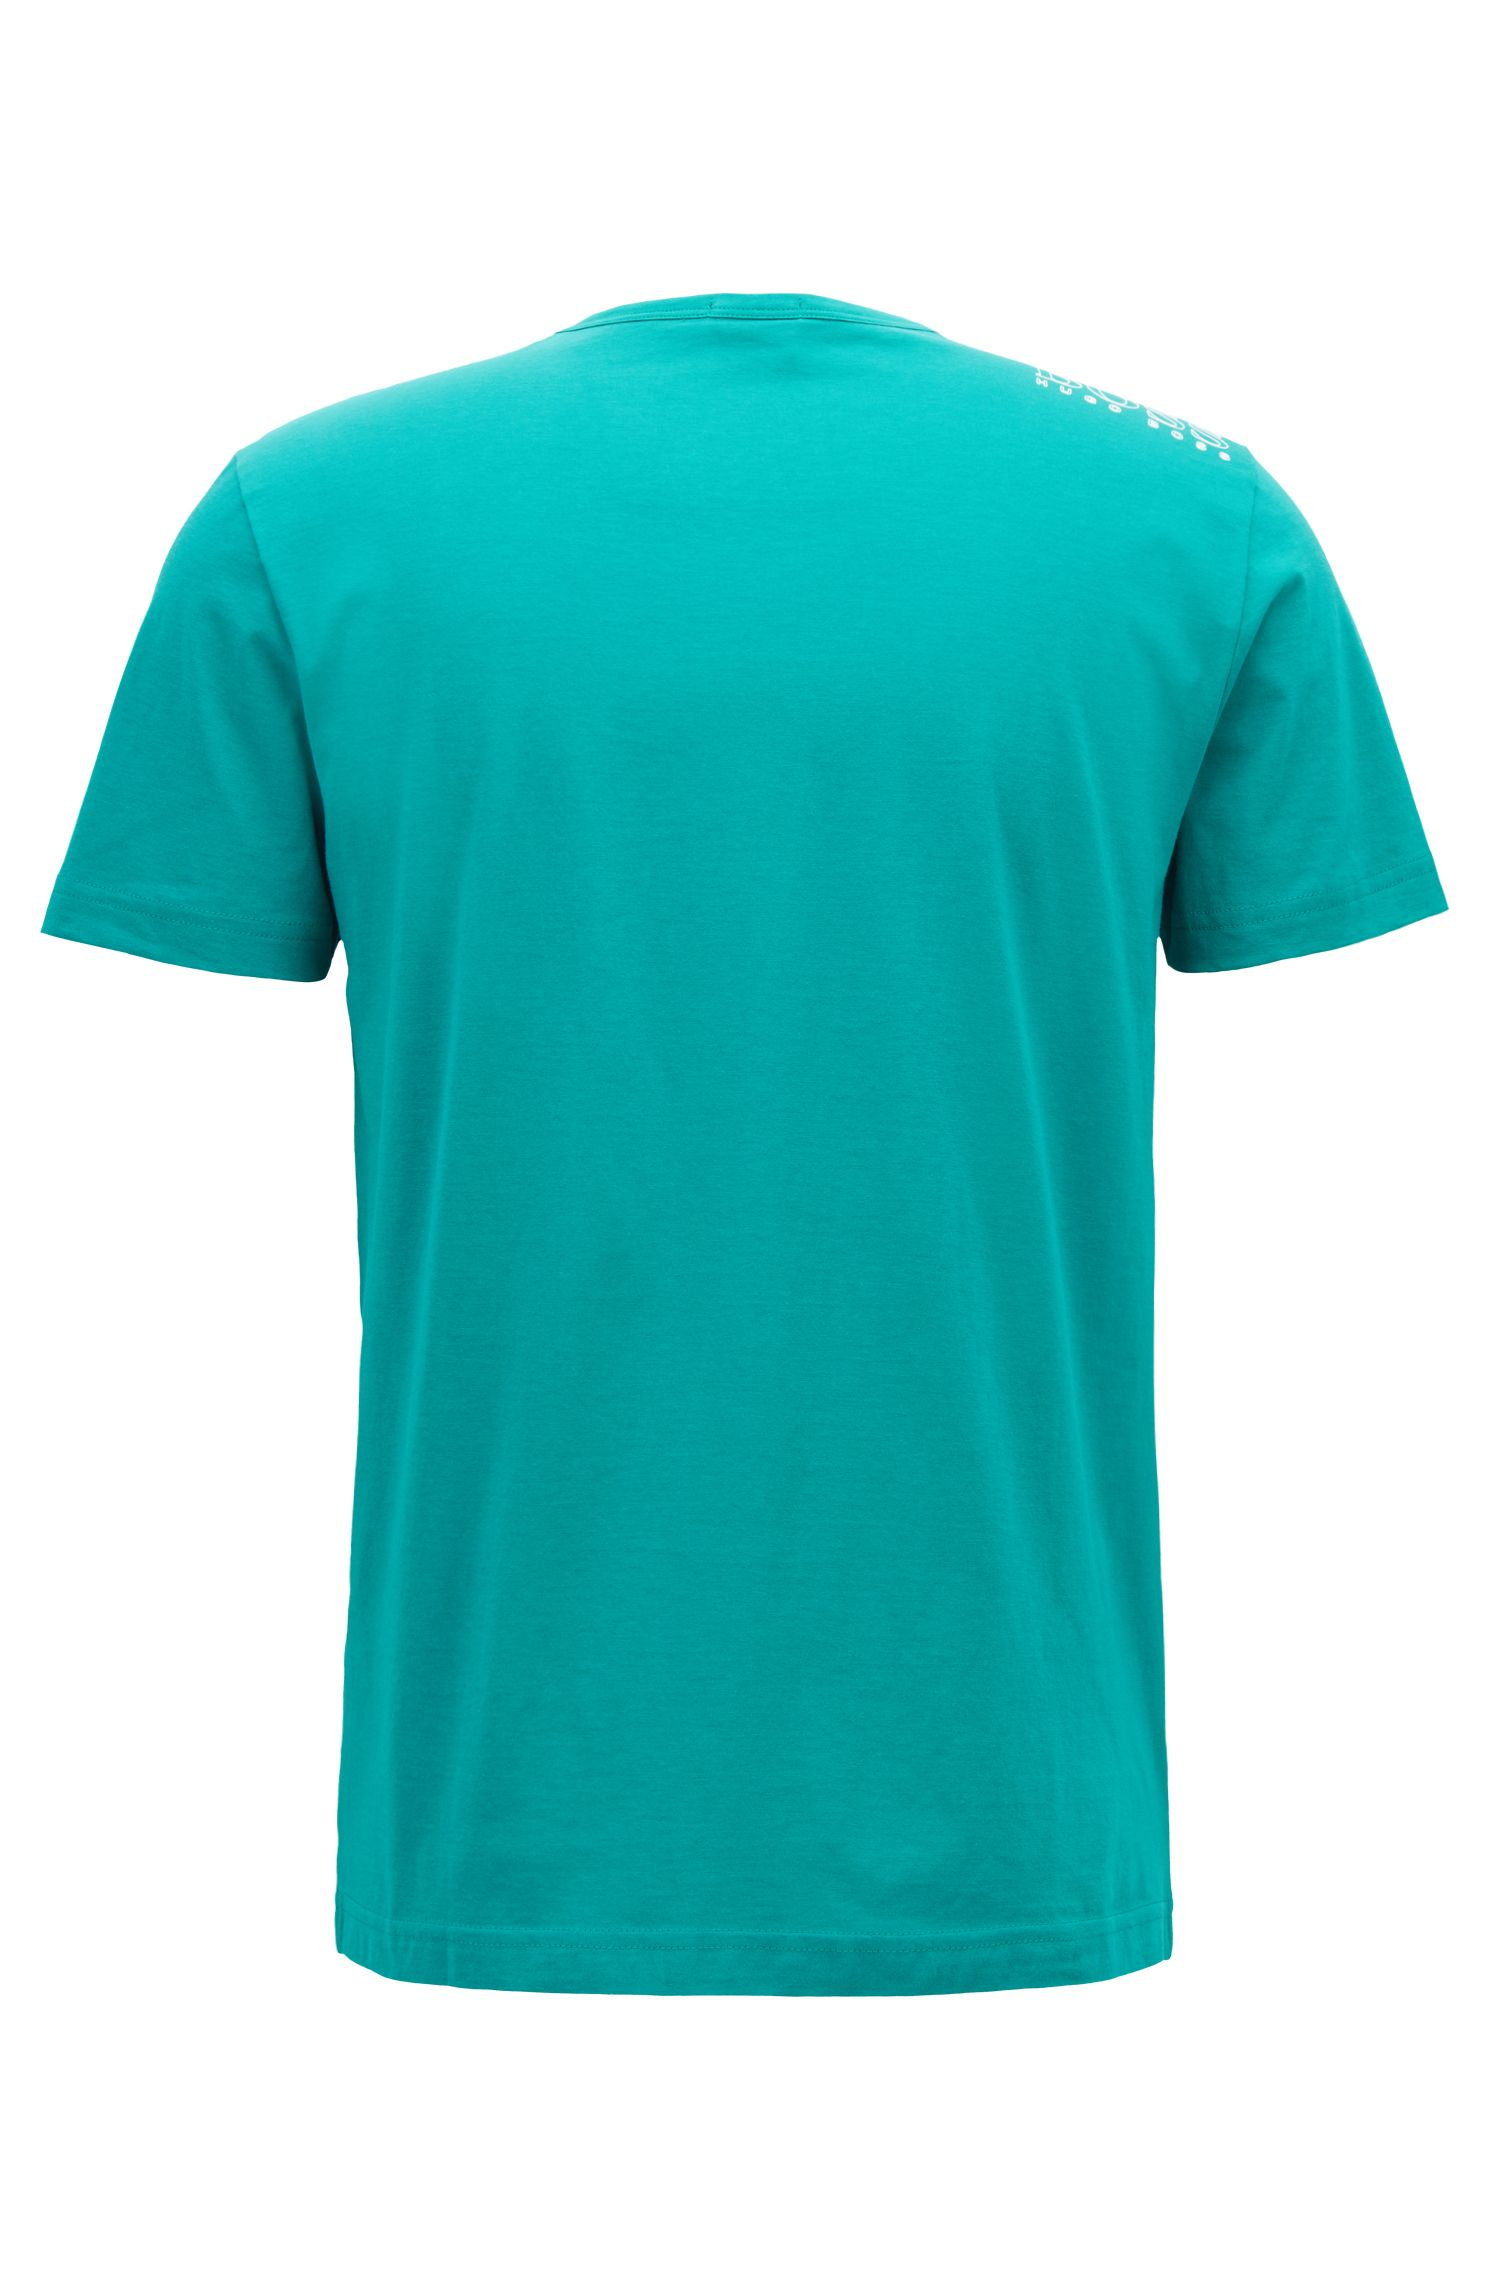 Regular-Fit T-Shirt aus Single Jersey, Grün